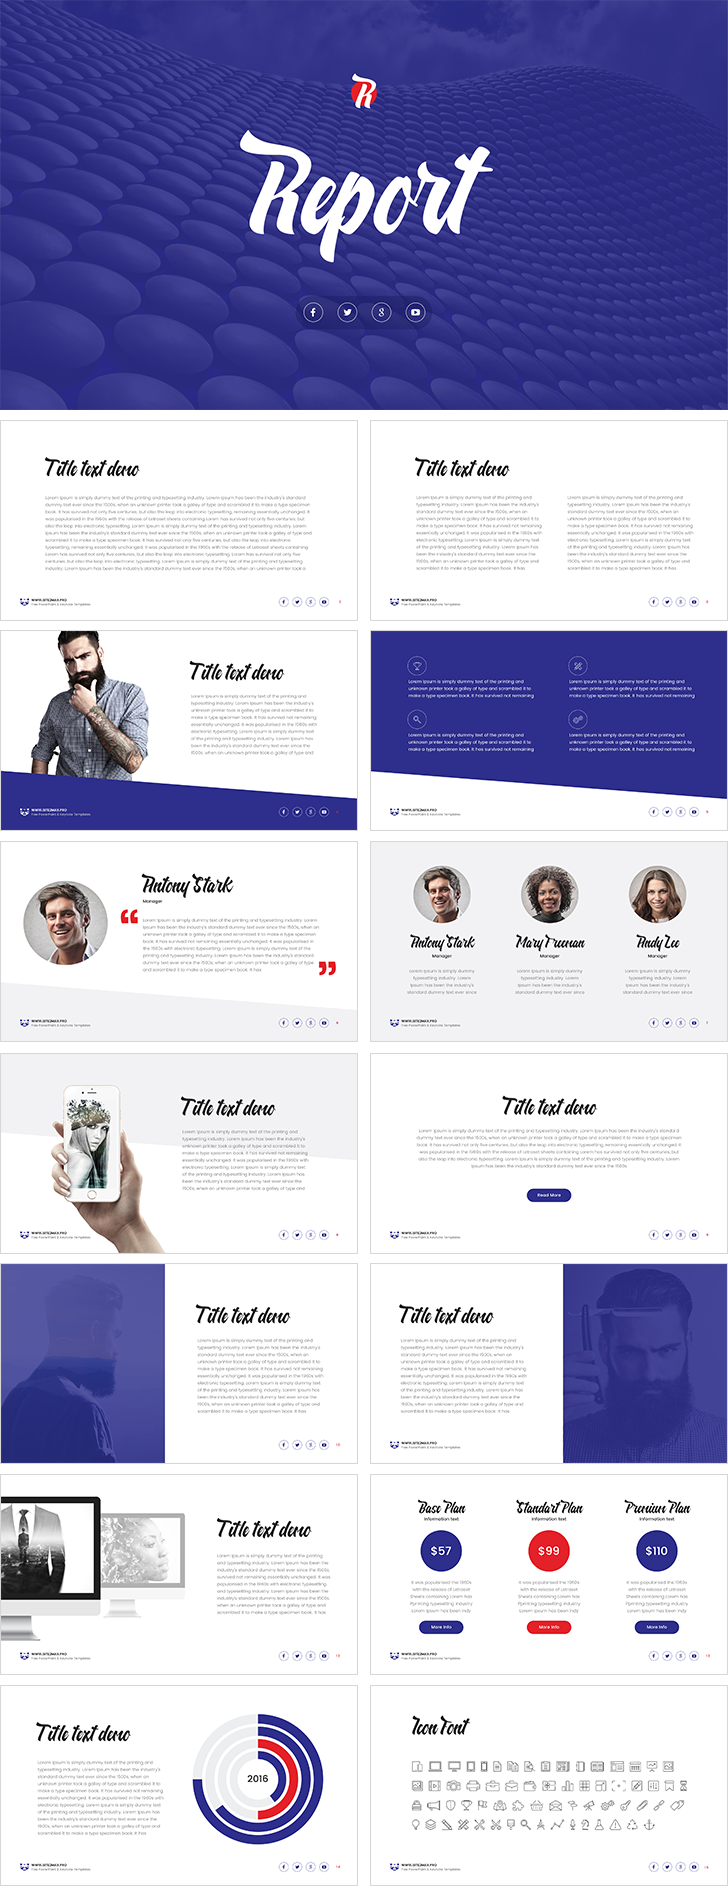 report free powerpoint template download free